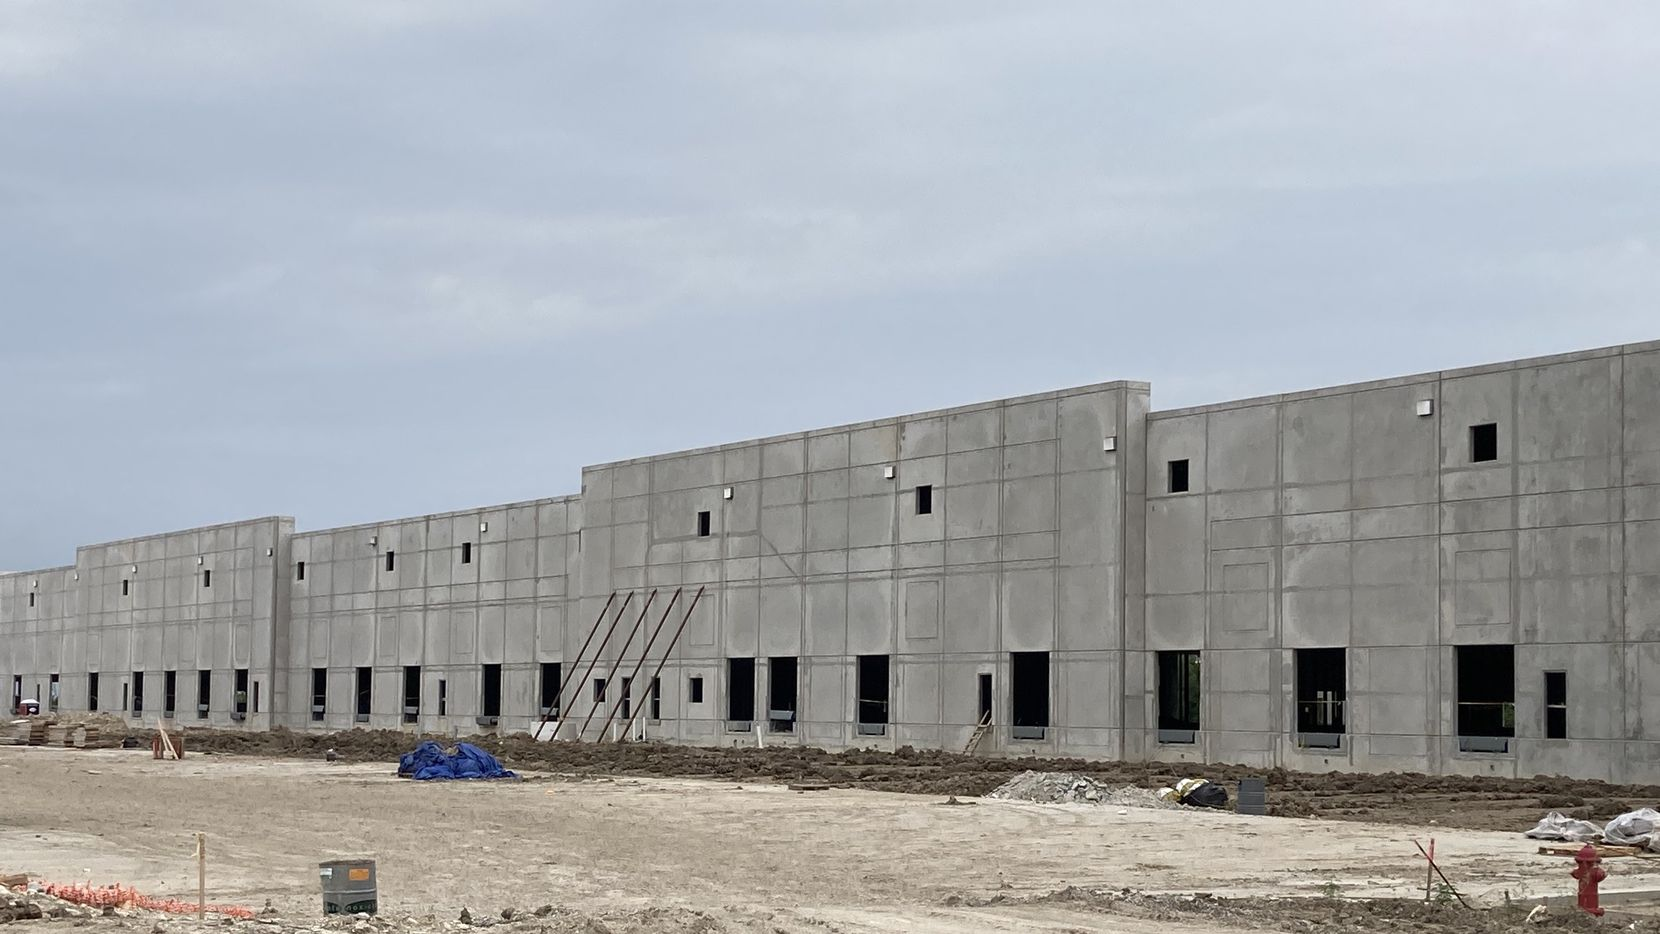 Velocis and Sumitomo are planning two warehouses in the D-FW area.